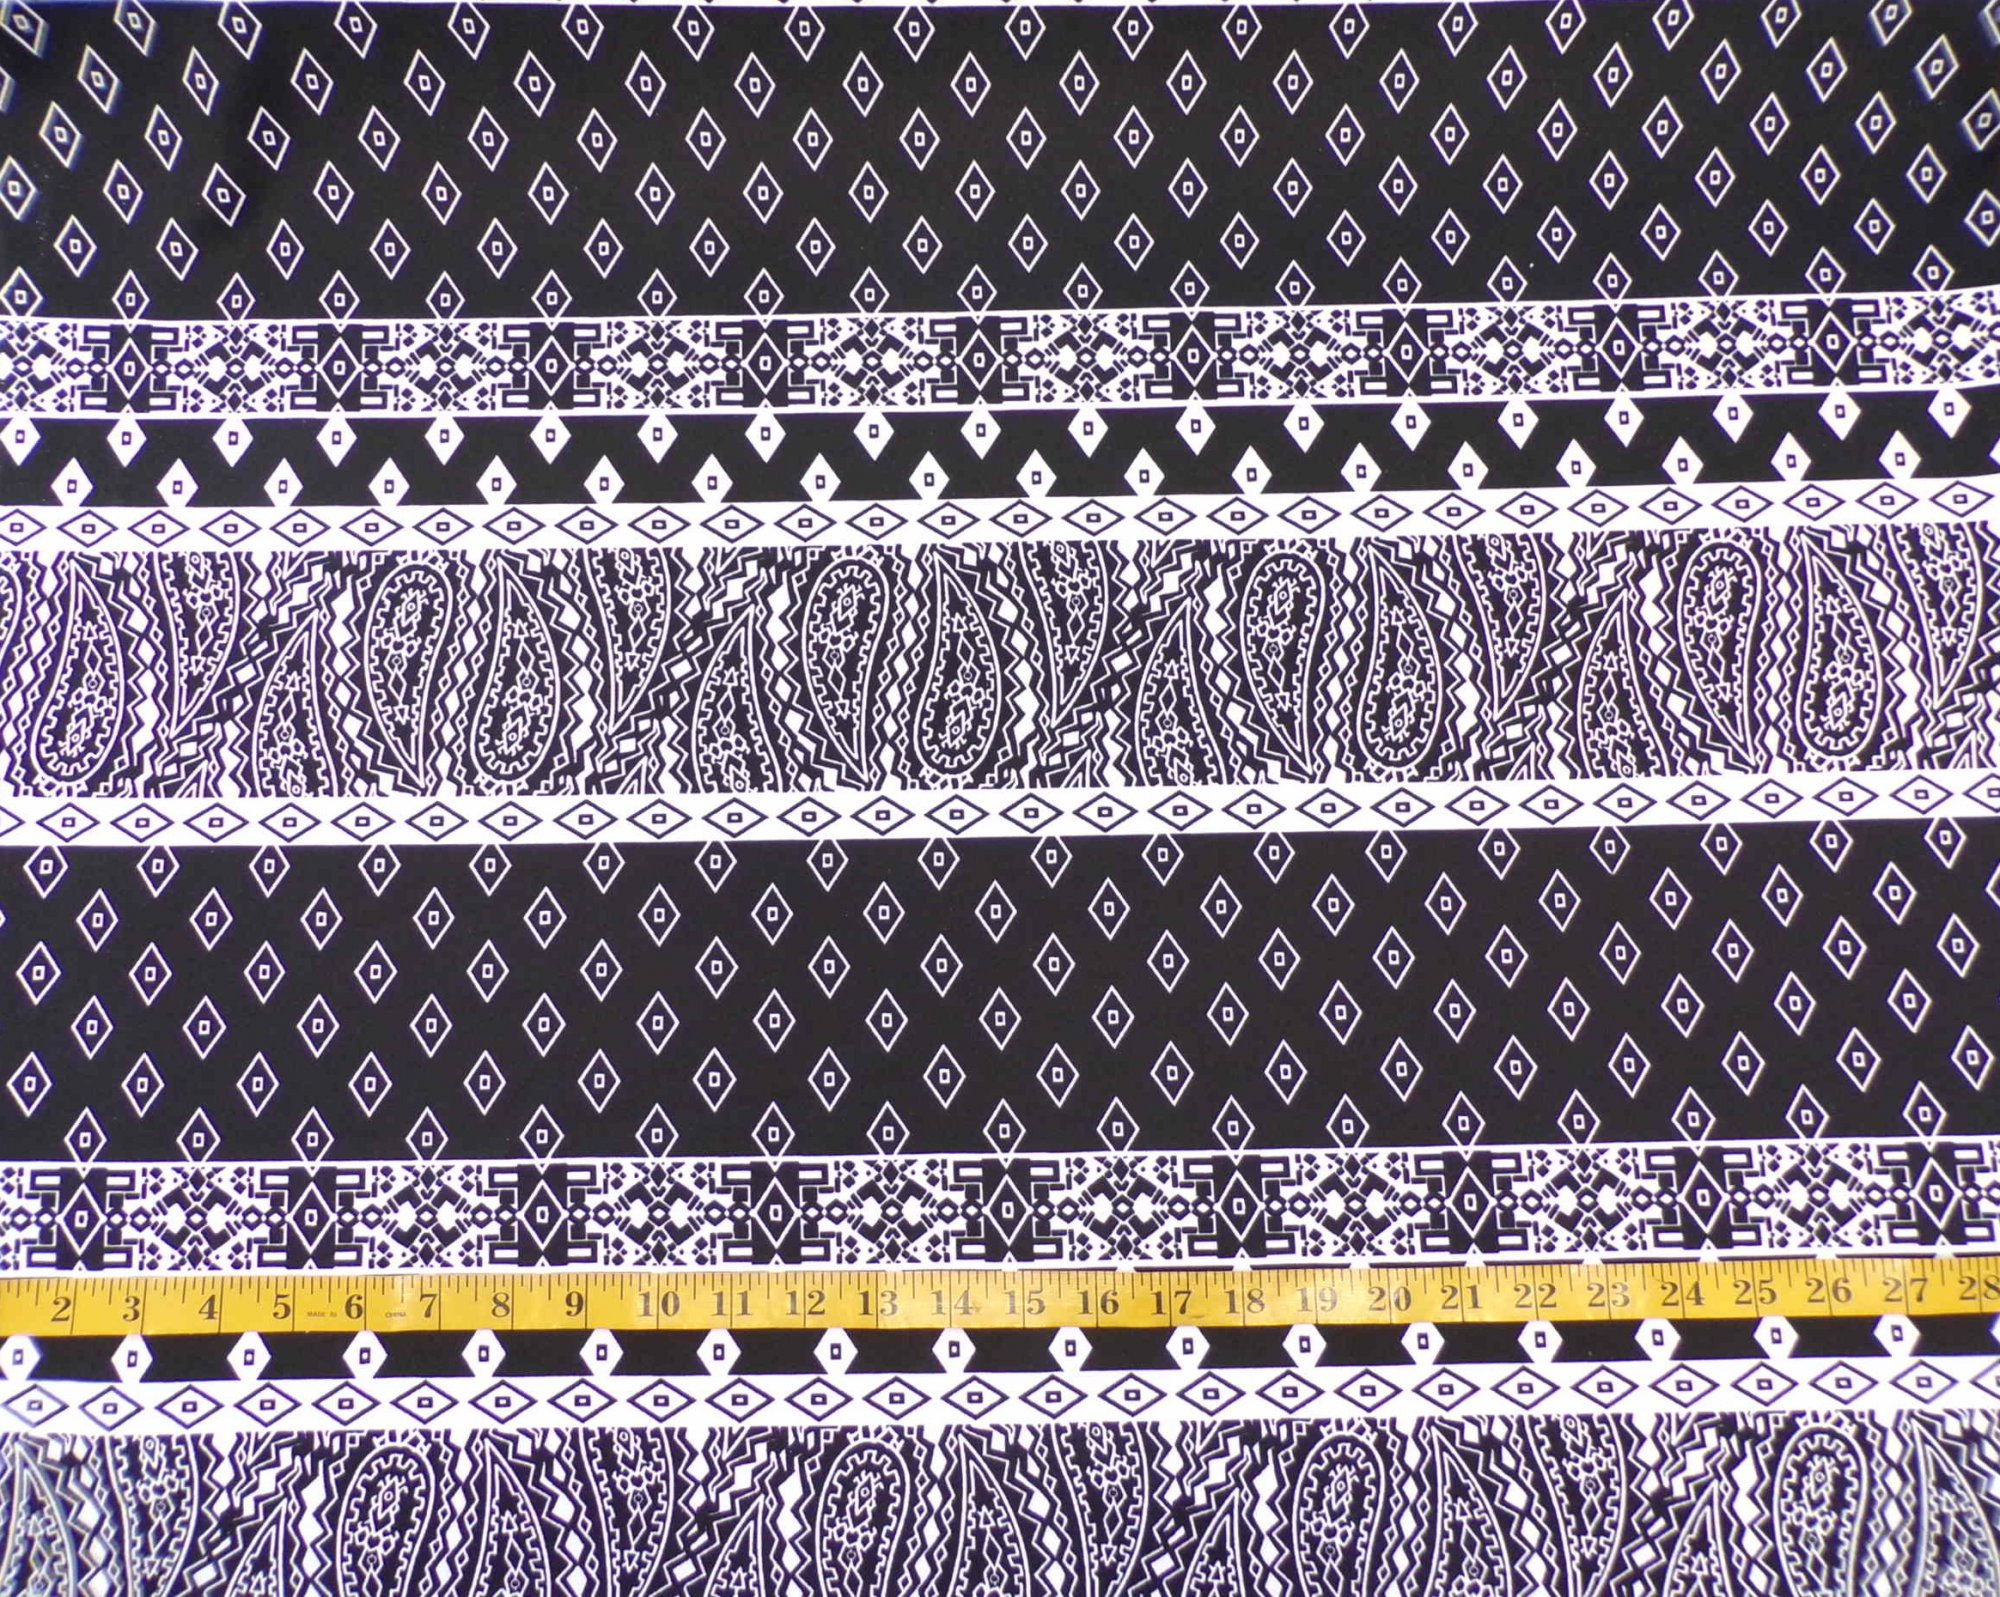 ITY Interlock - Black and White Paisley Stripes